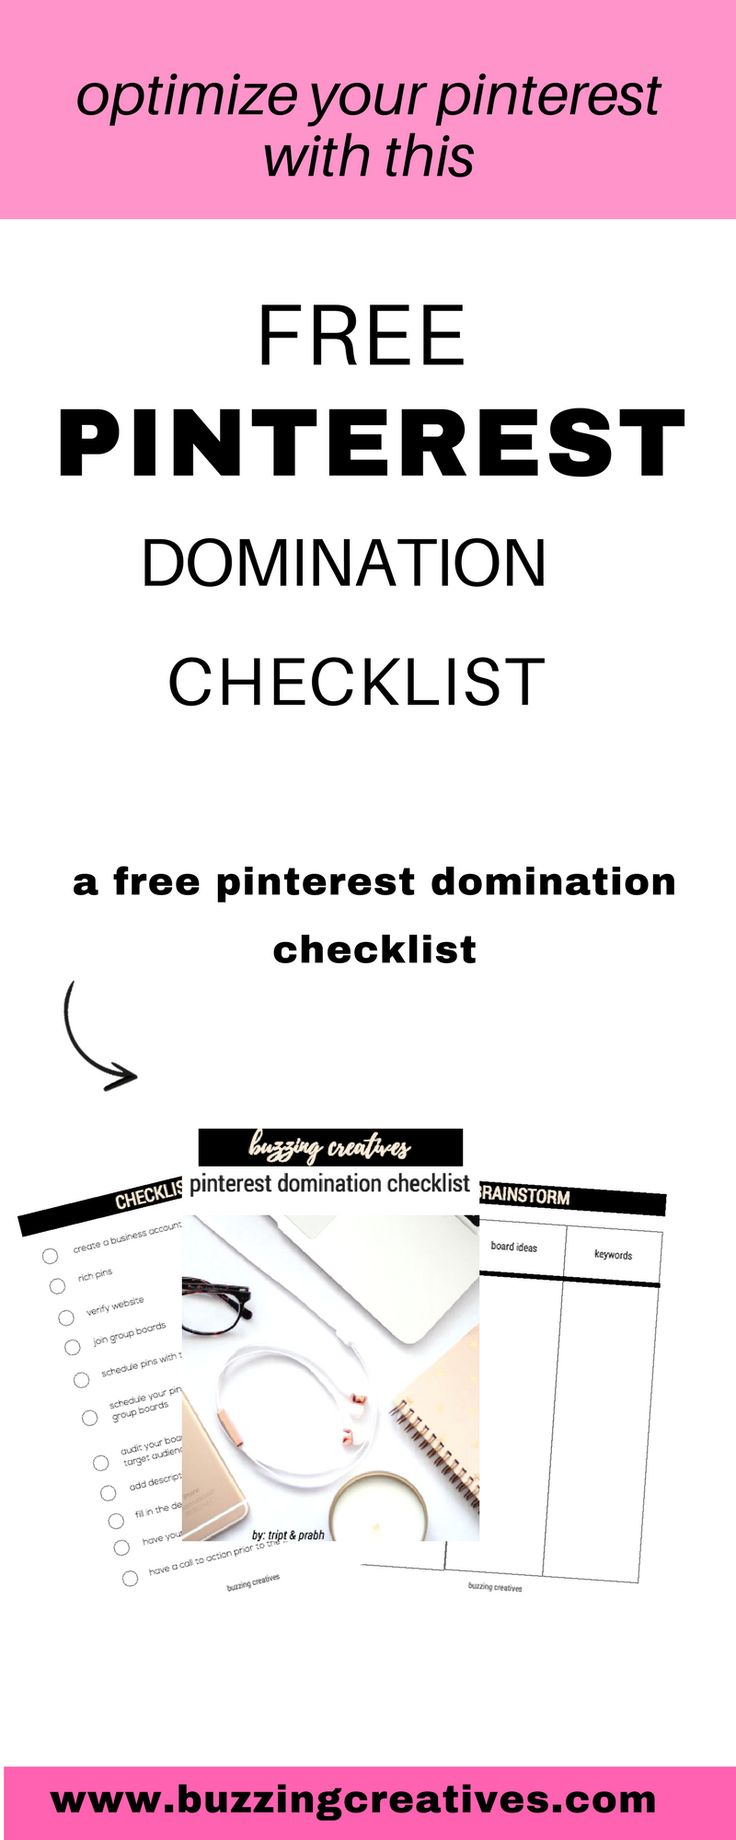 download our Pinterest Domination Checklist and get started on Optimizing your Pinterest and get early bird access & price to Pin for Growth our Pinterest Course